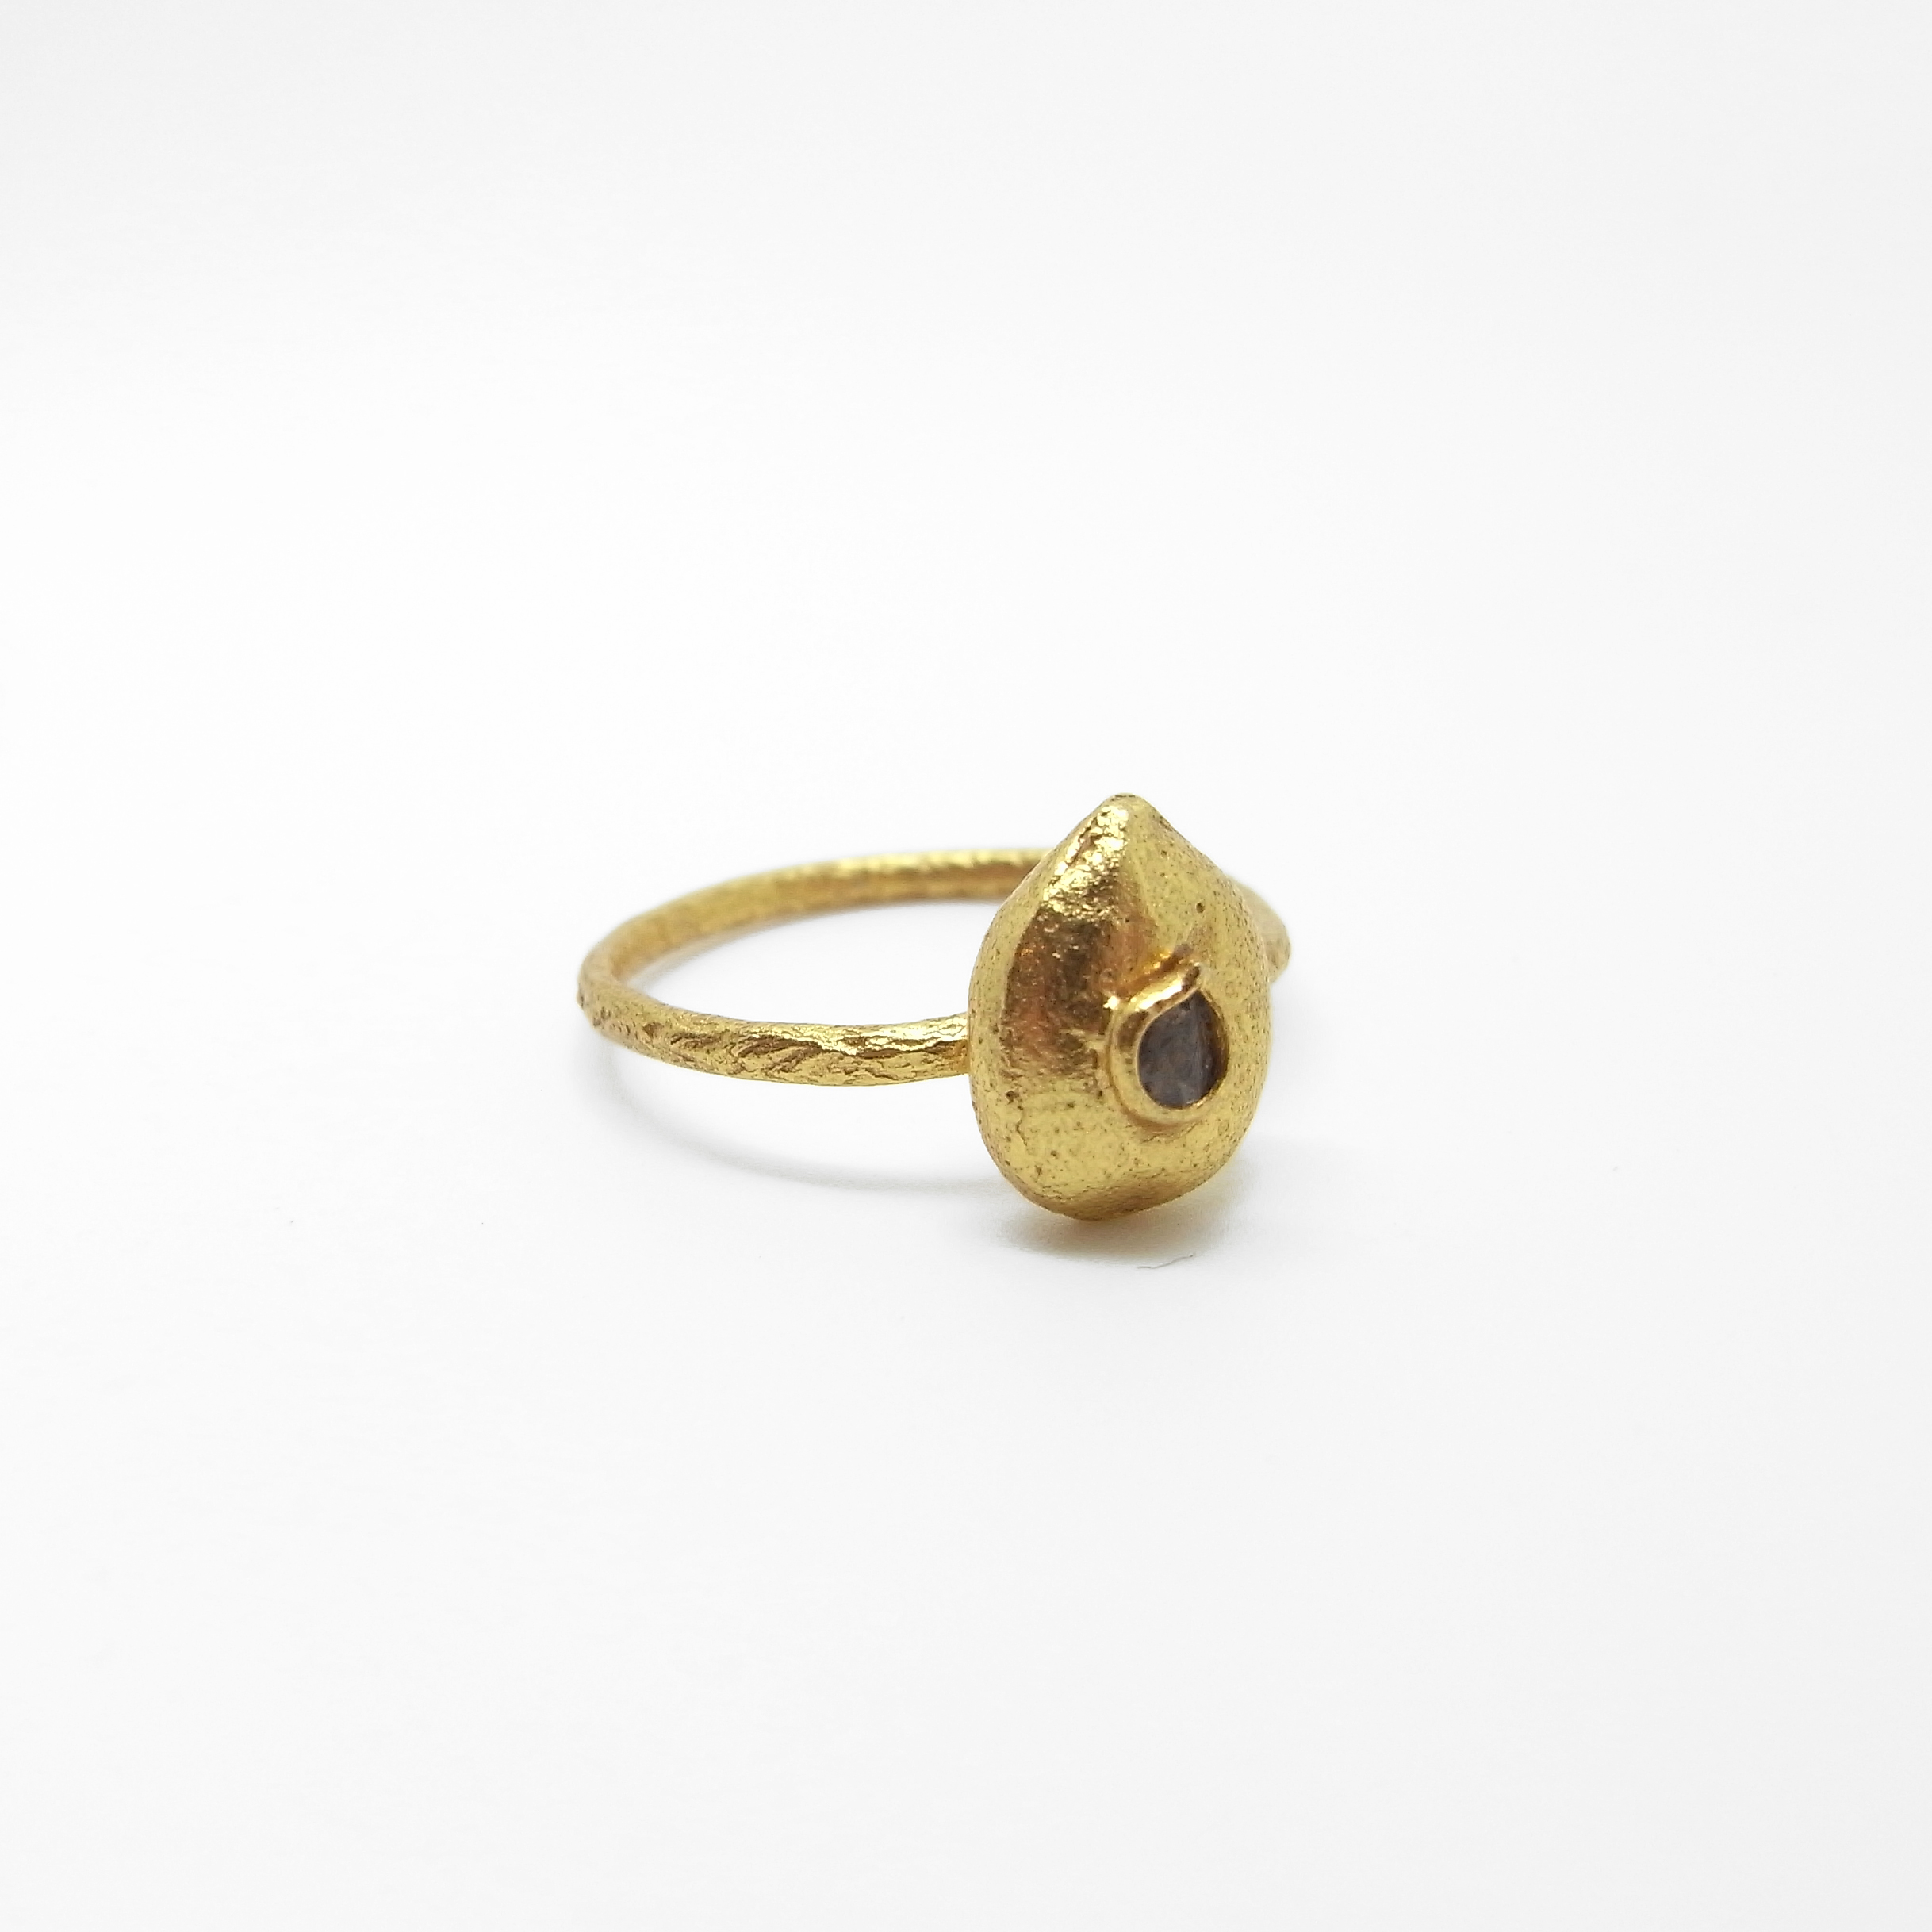 Watermelon Seed Ring with Diamond